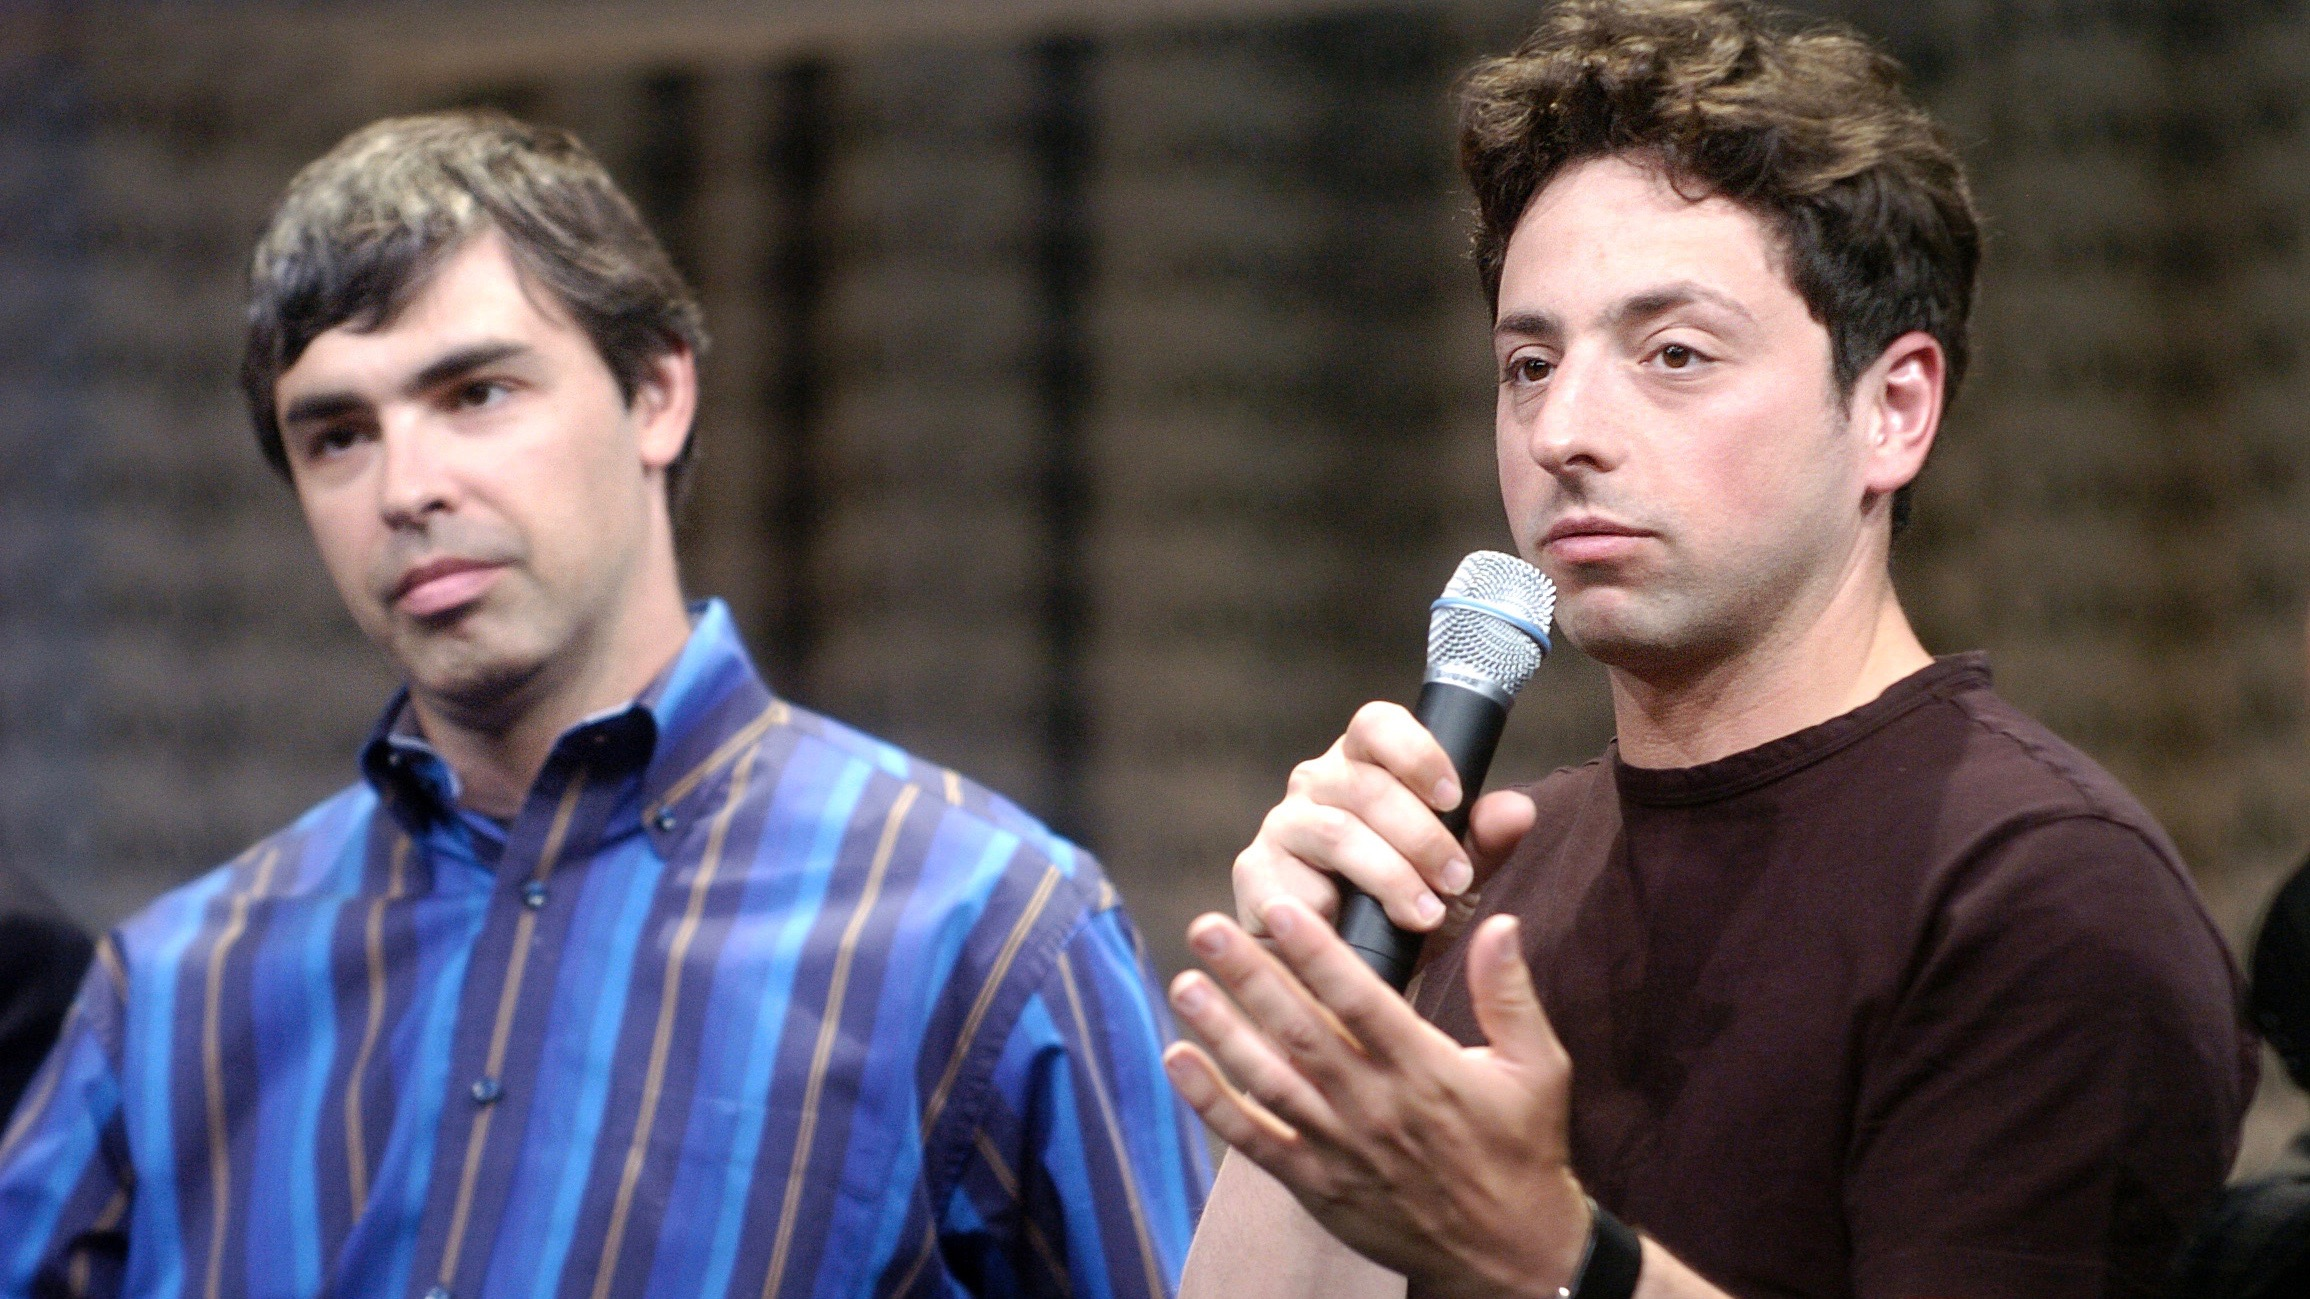 Google Reckoning With History of Interoffice Romance by Top Execs